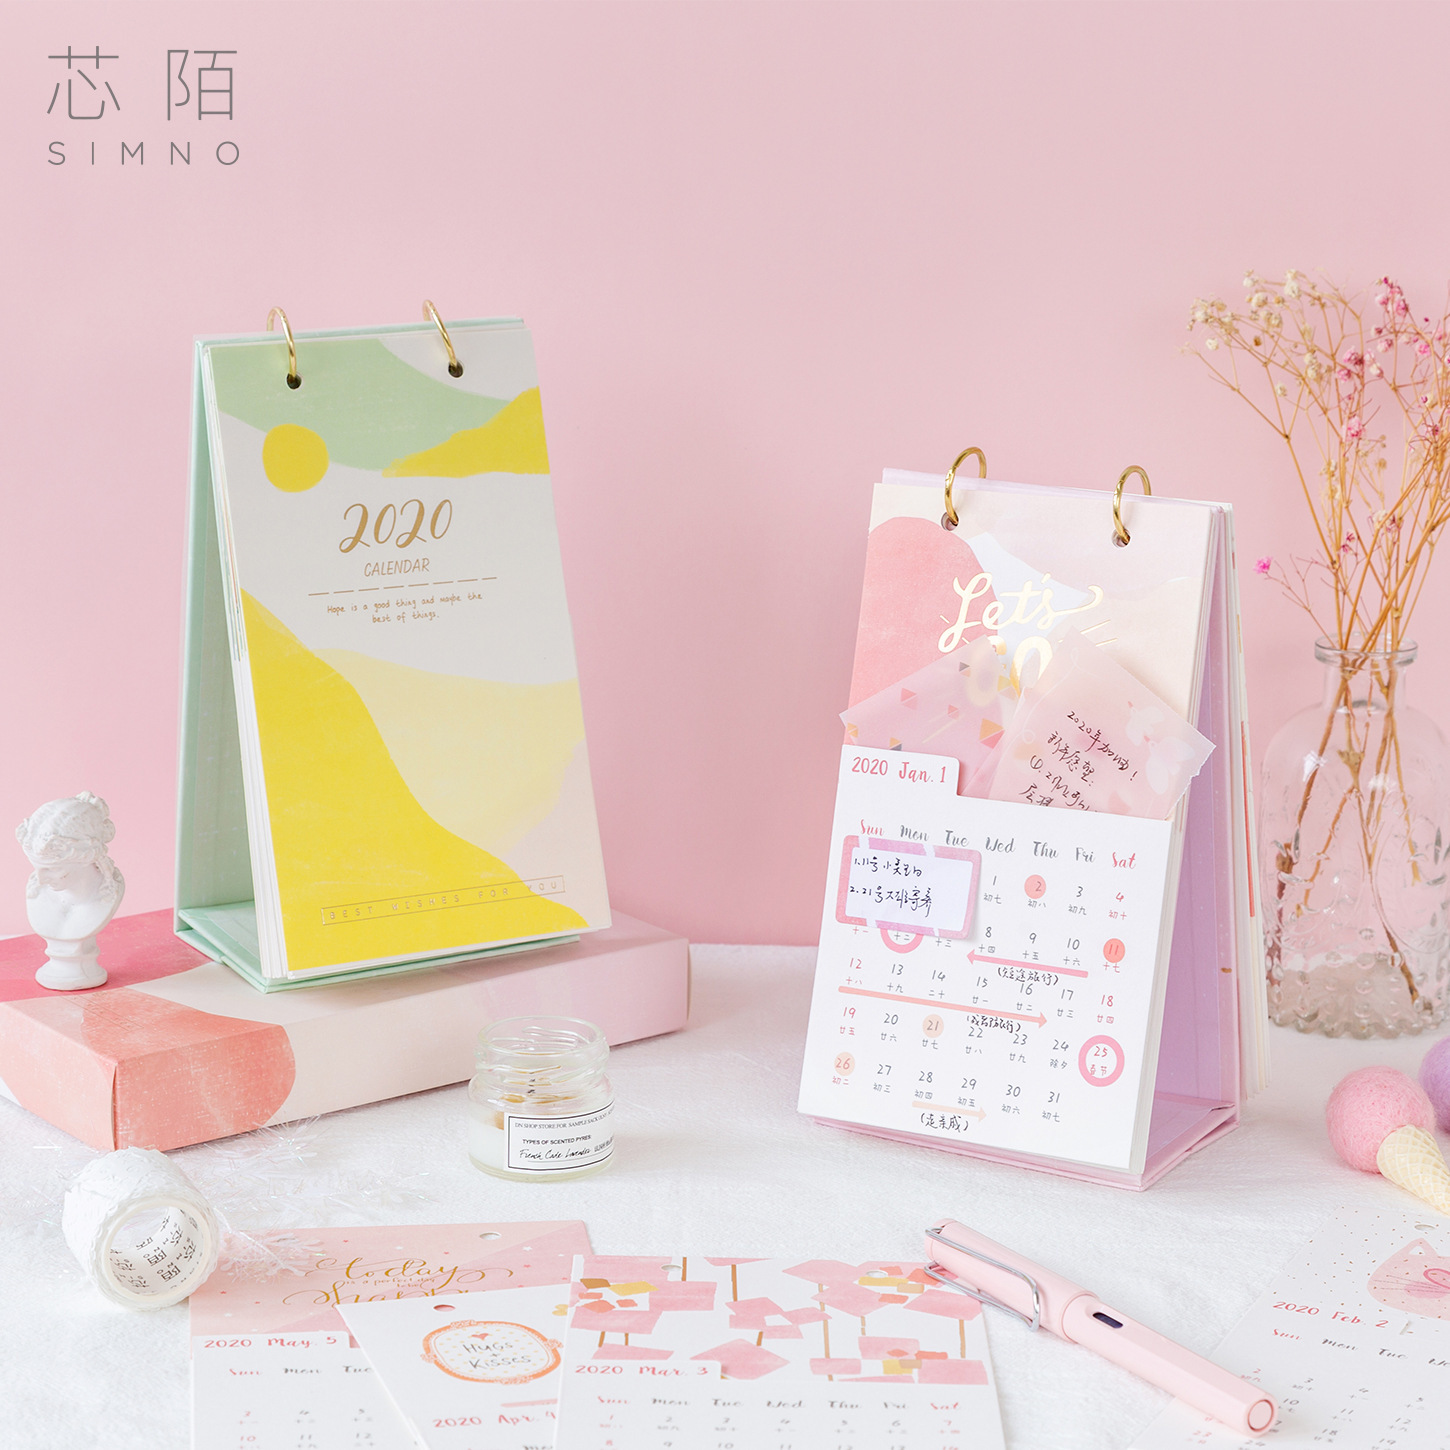 New Year FreshnessTable Calendar Mini Table Desk Calendar Agenda Organizer Planner Book Calendar 2020 With Sticker & Sticky Note